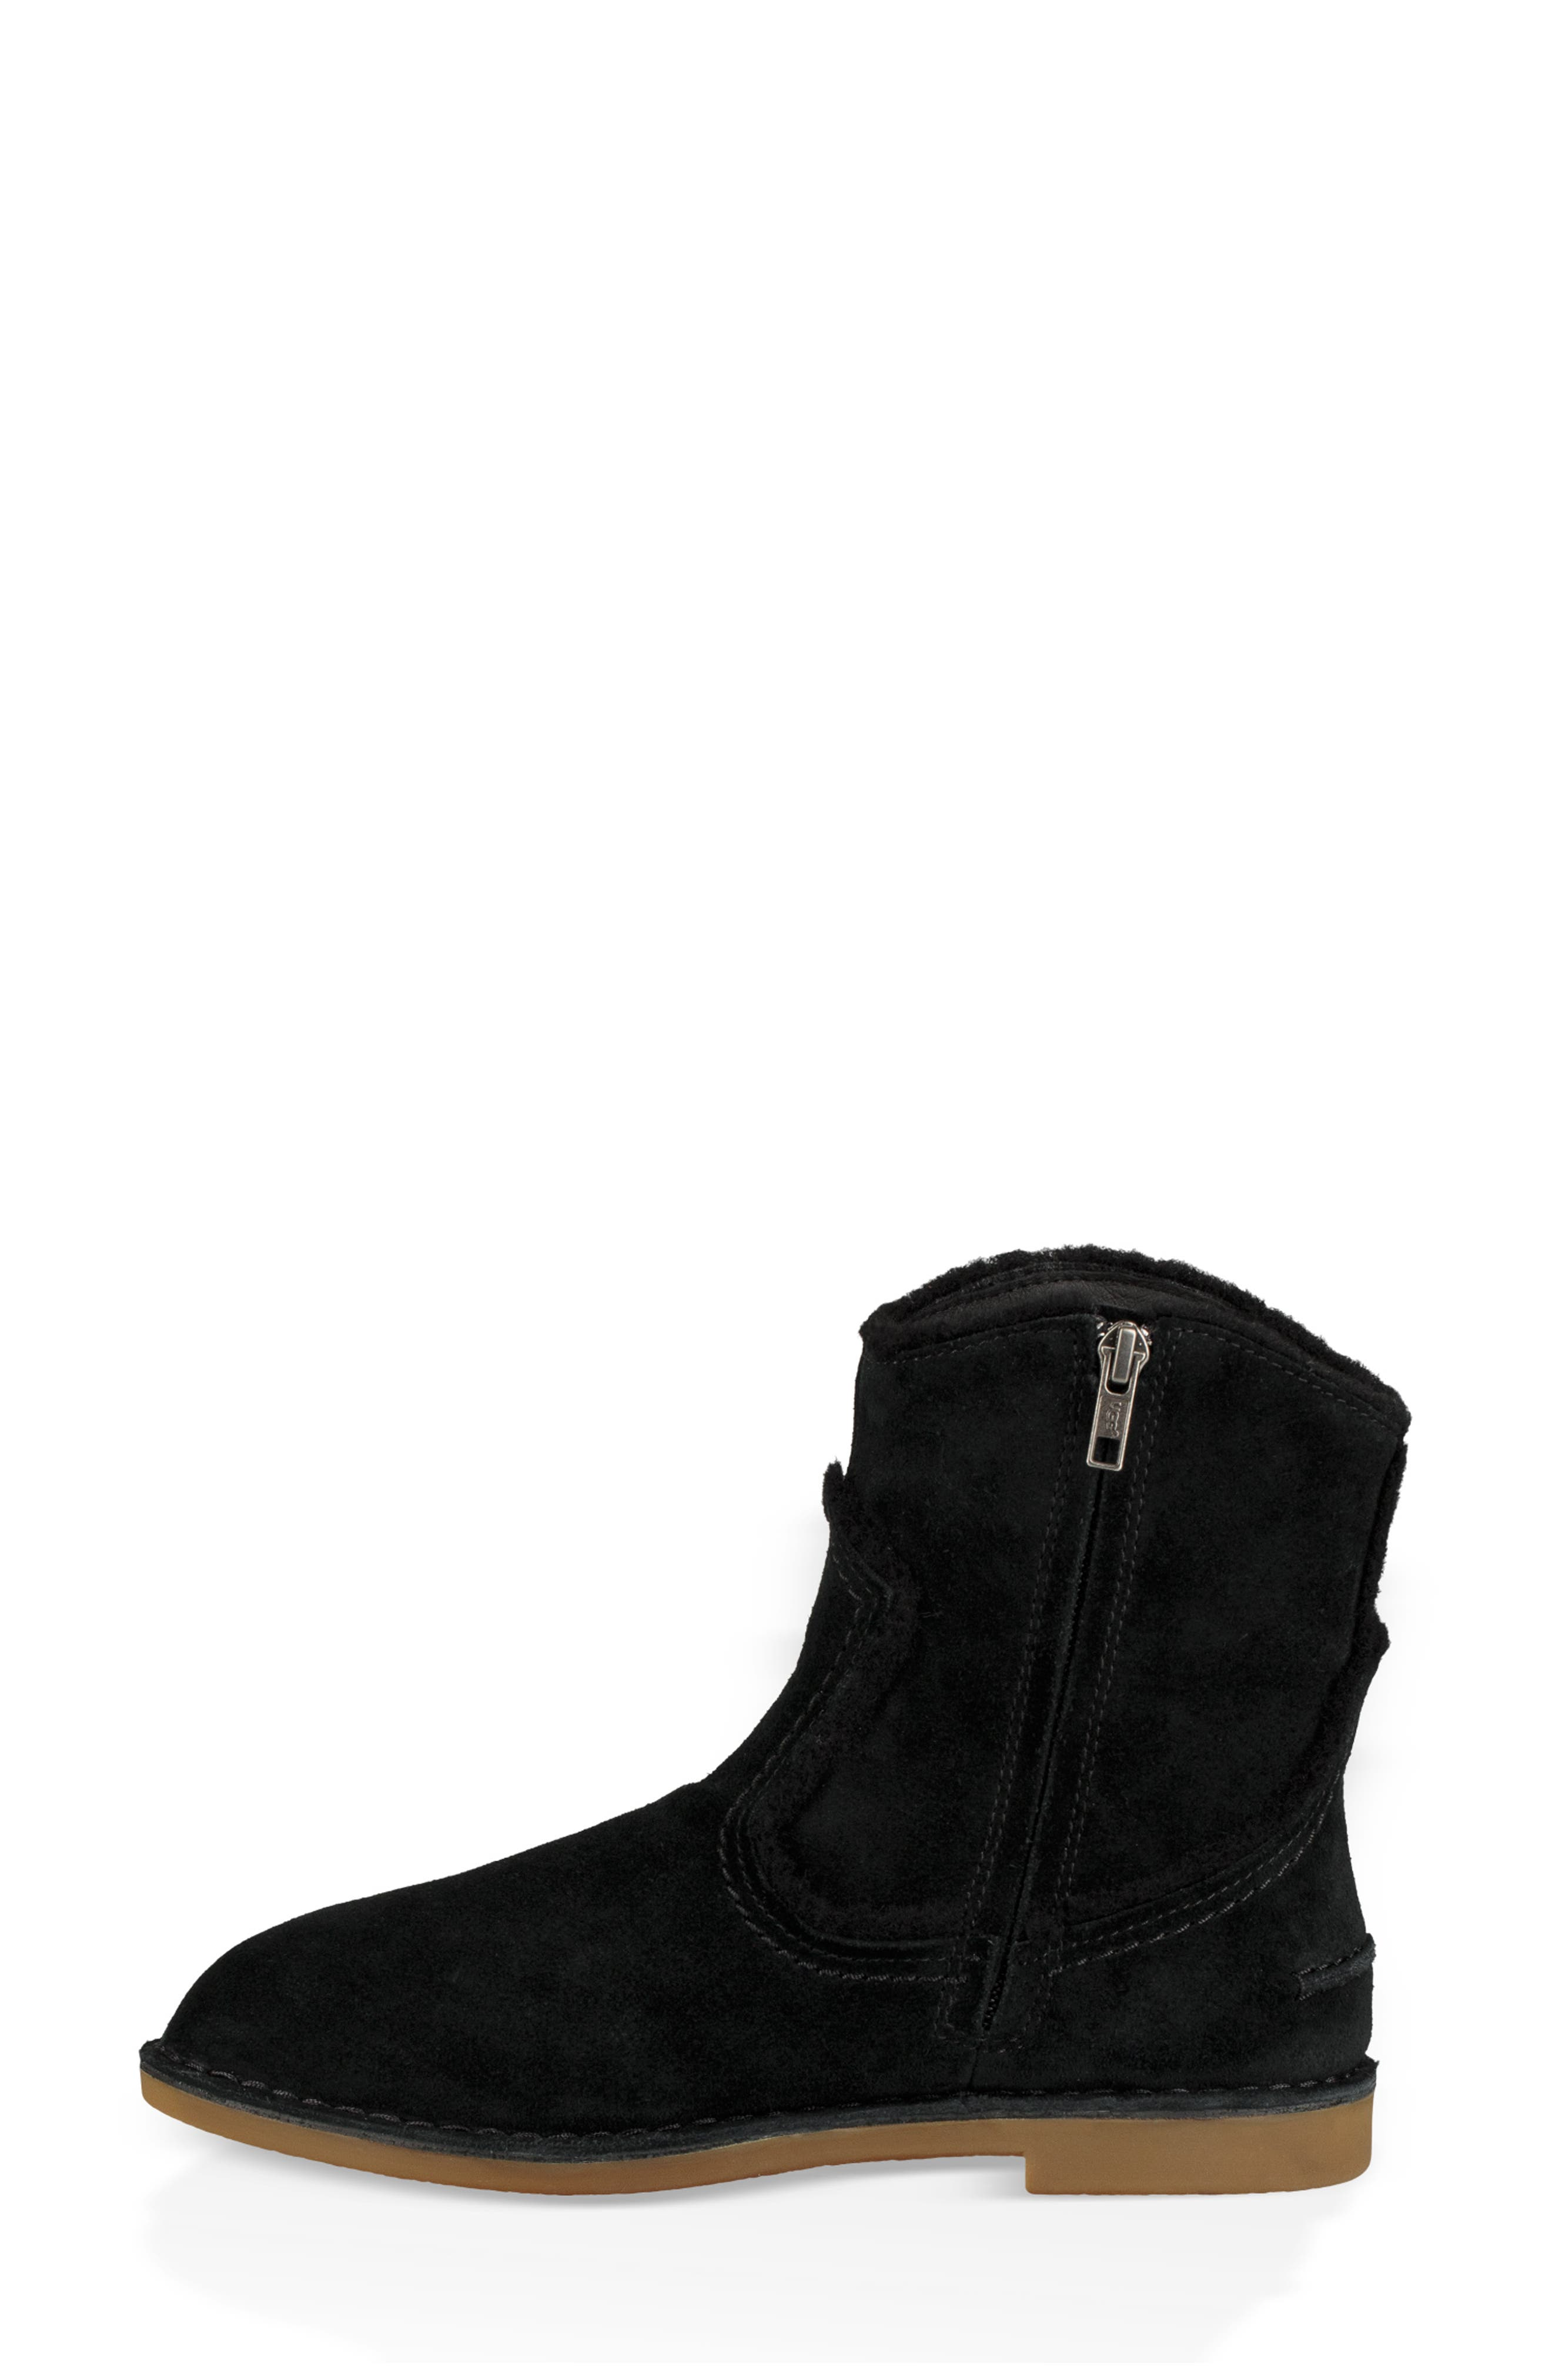 UGG<SUP>®</SUP>, Catica Boot, Alternate thumbnail 6, color, 001